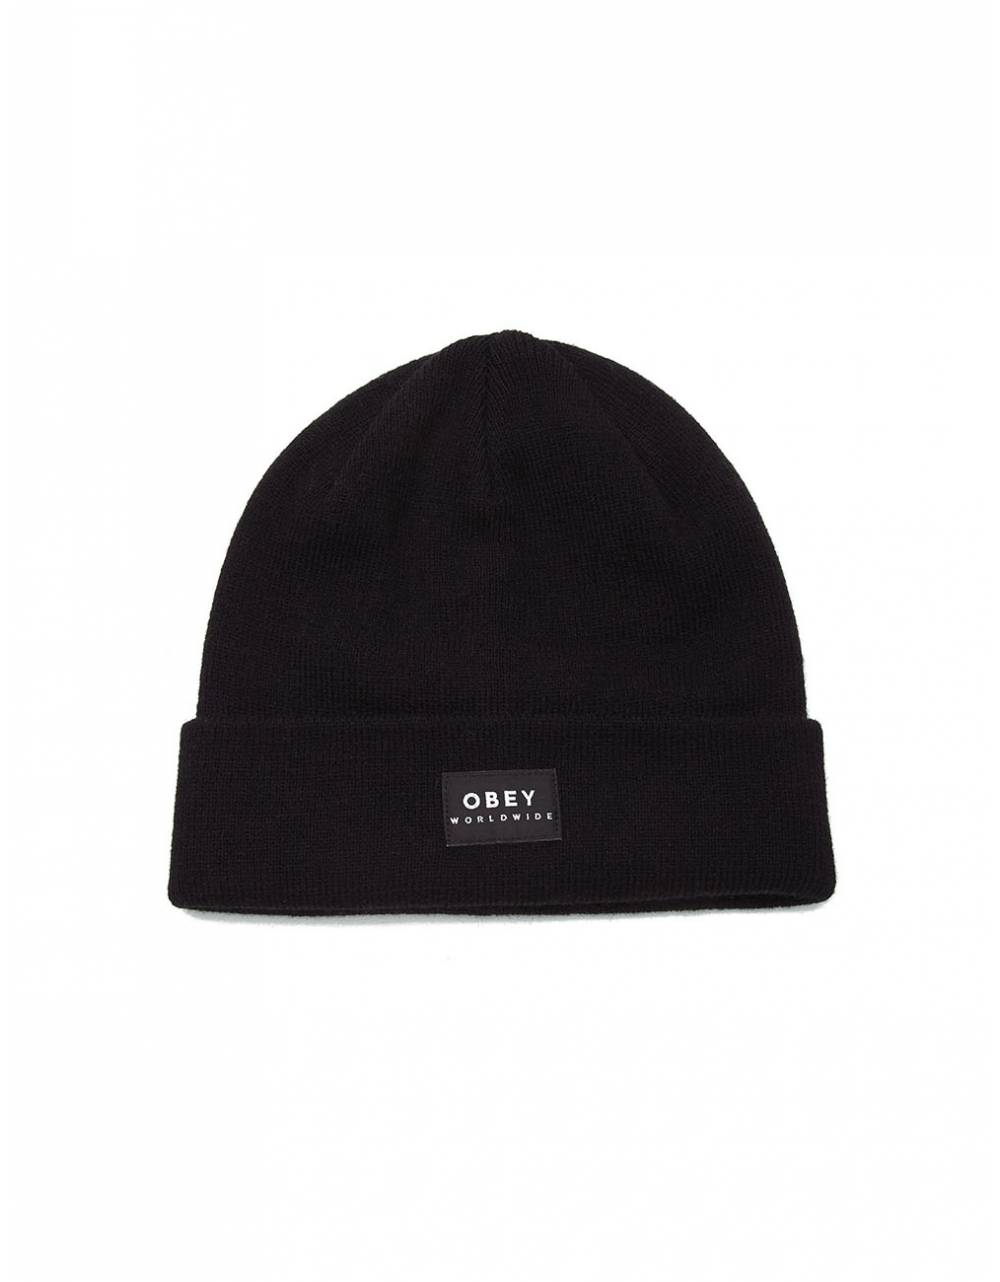 Obey Woman vernon beanie II - Black obey Beanie 35,00 €